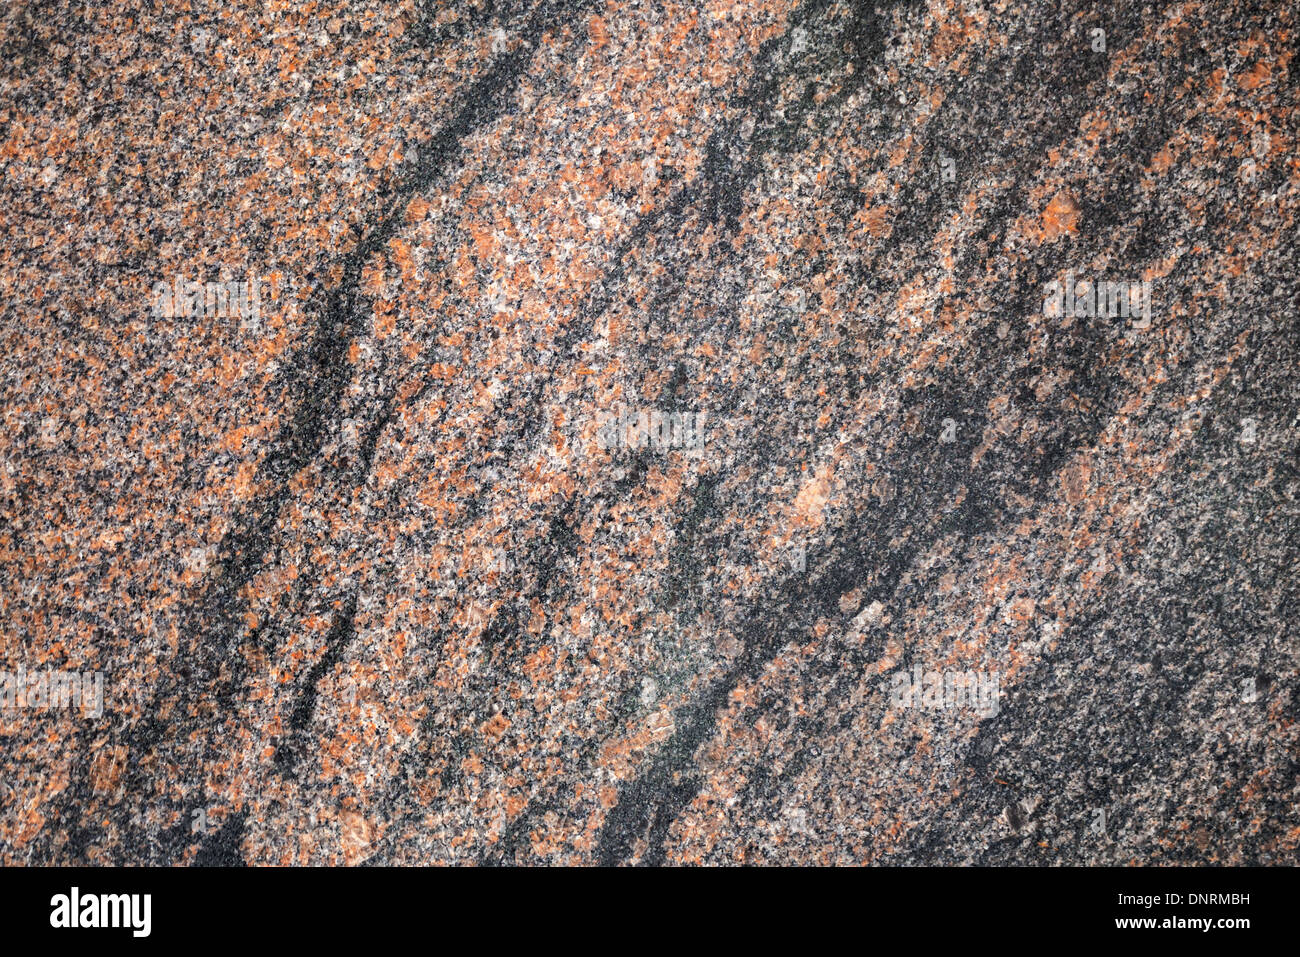 Red and gray granite stone background texture - Stock Image